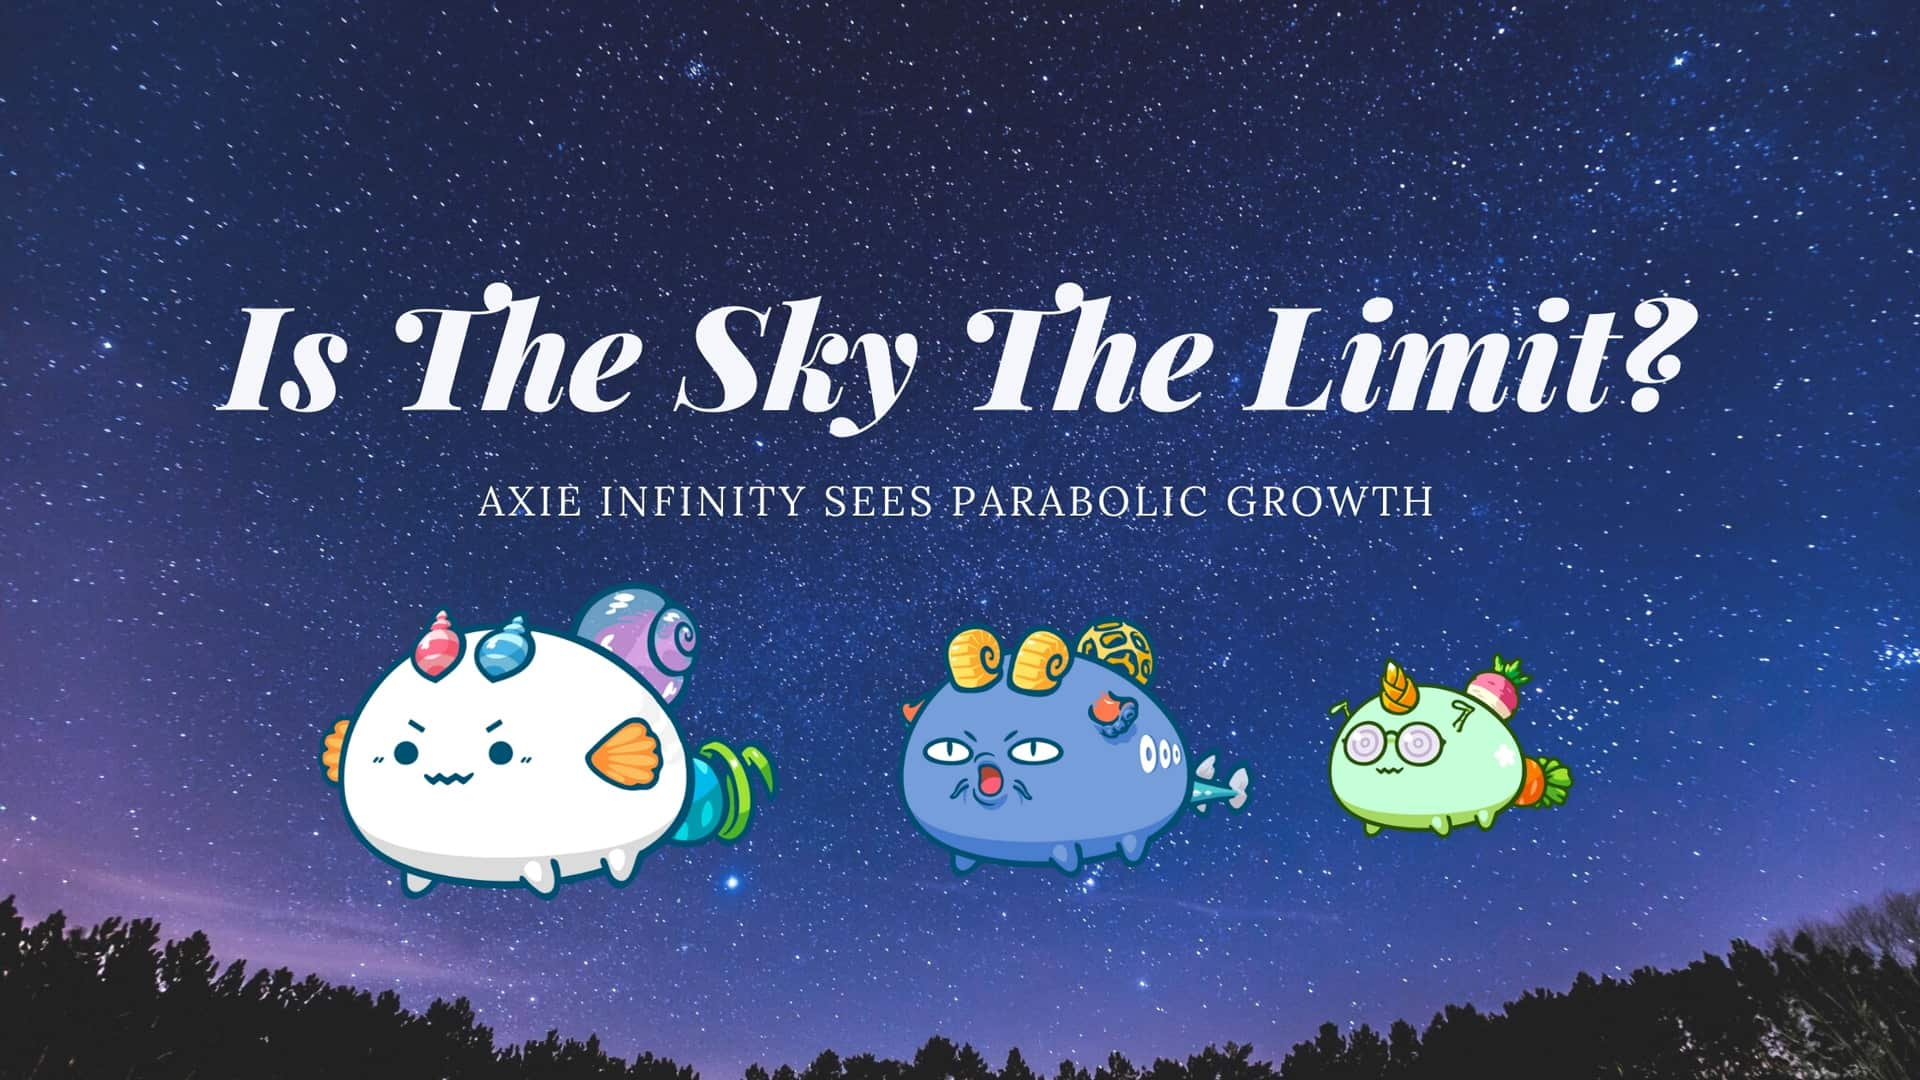 Axie Infinity Sees Parabolic Growth